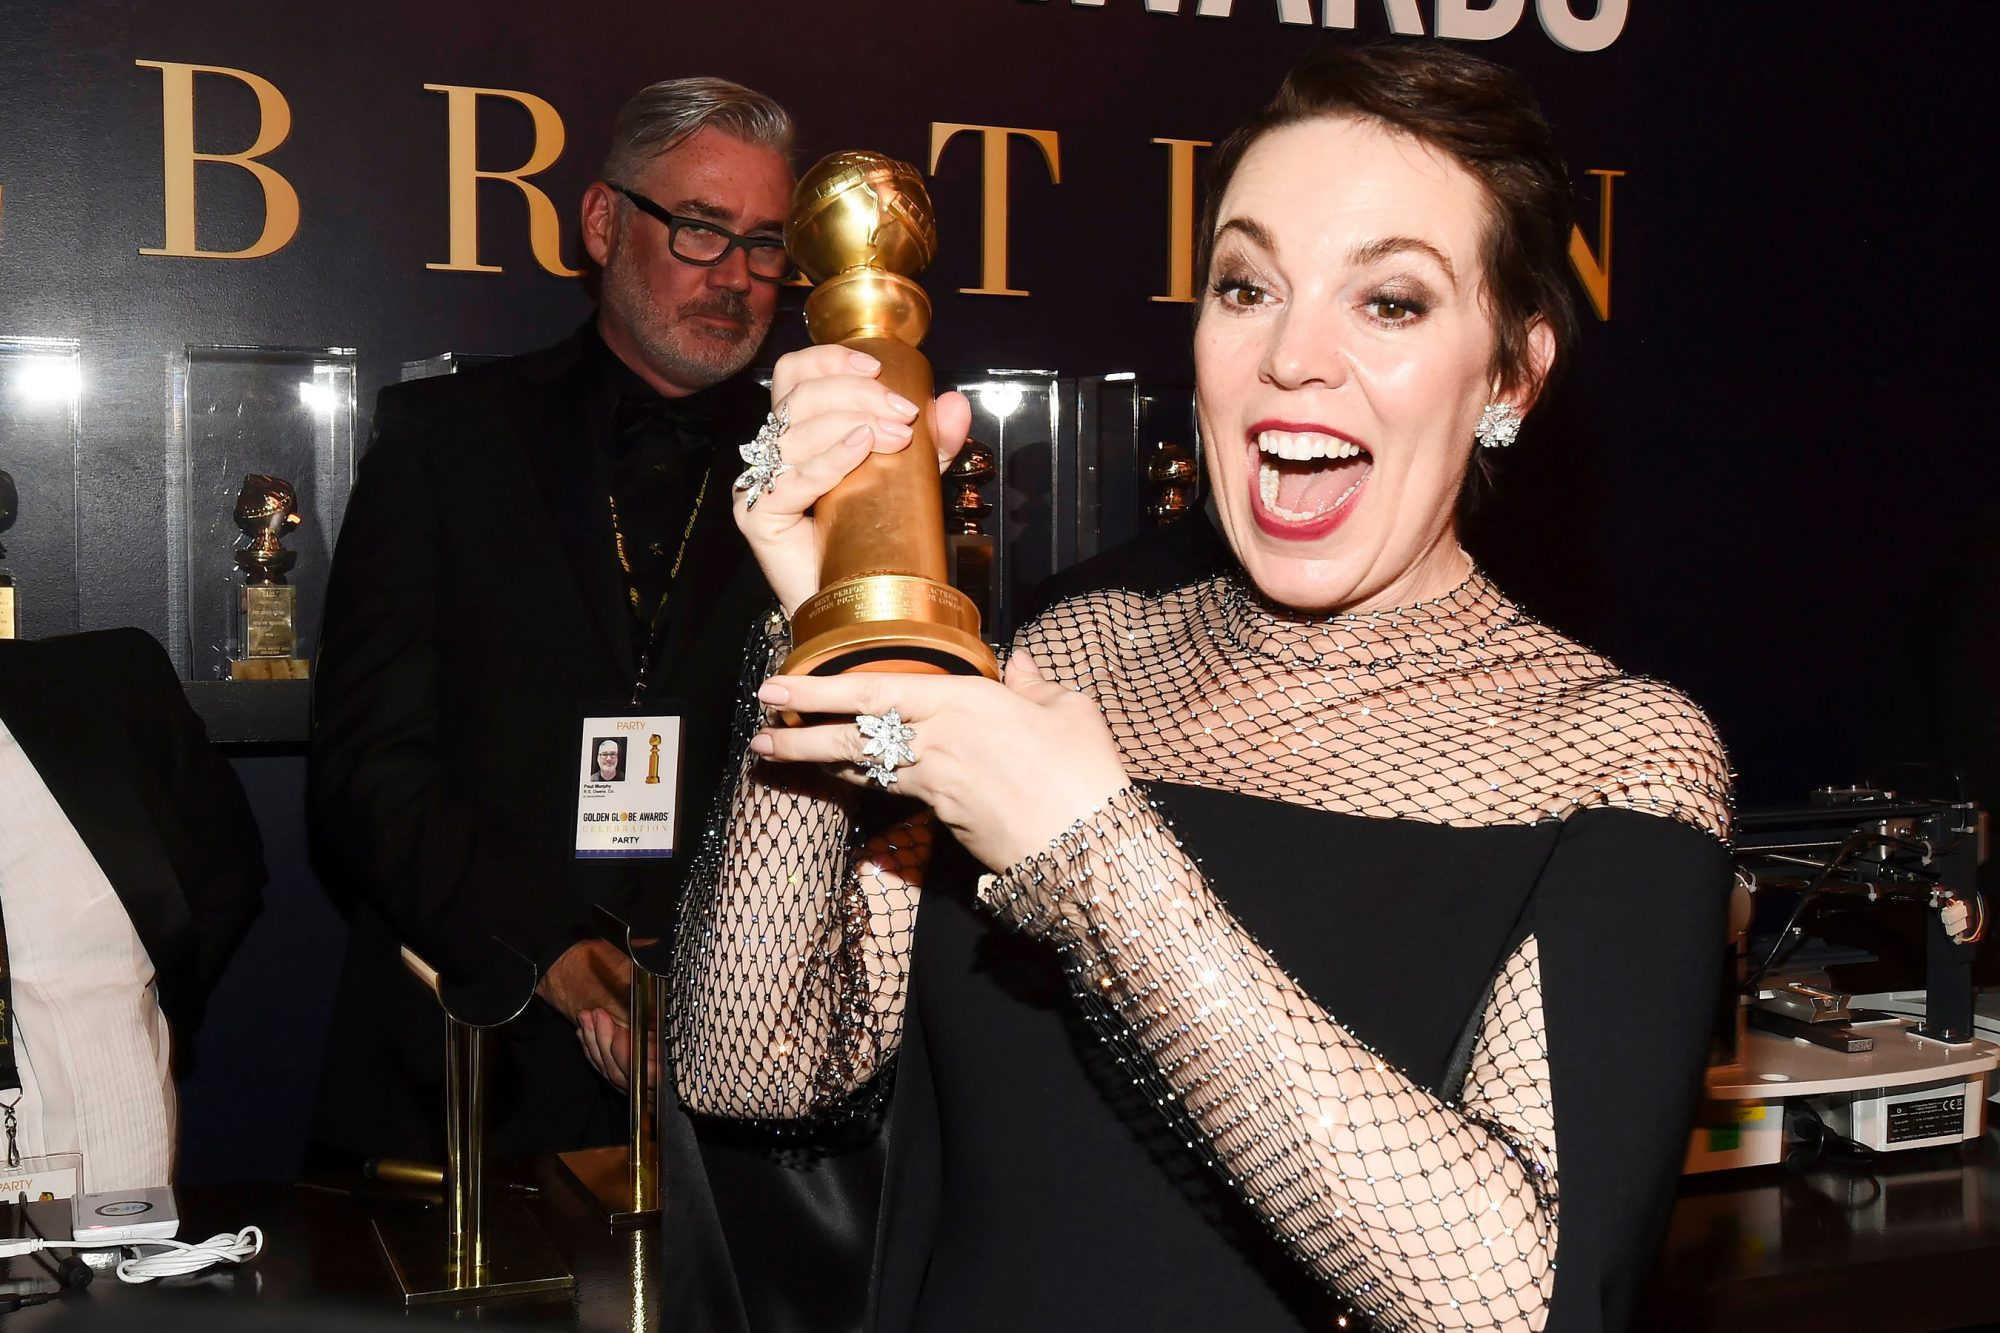 HFPA 76th Annual Golden Globe Awards, Screening and After Party, Inside, Los Angeles, USA - 06 Jan 2019